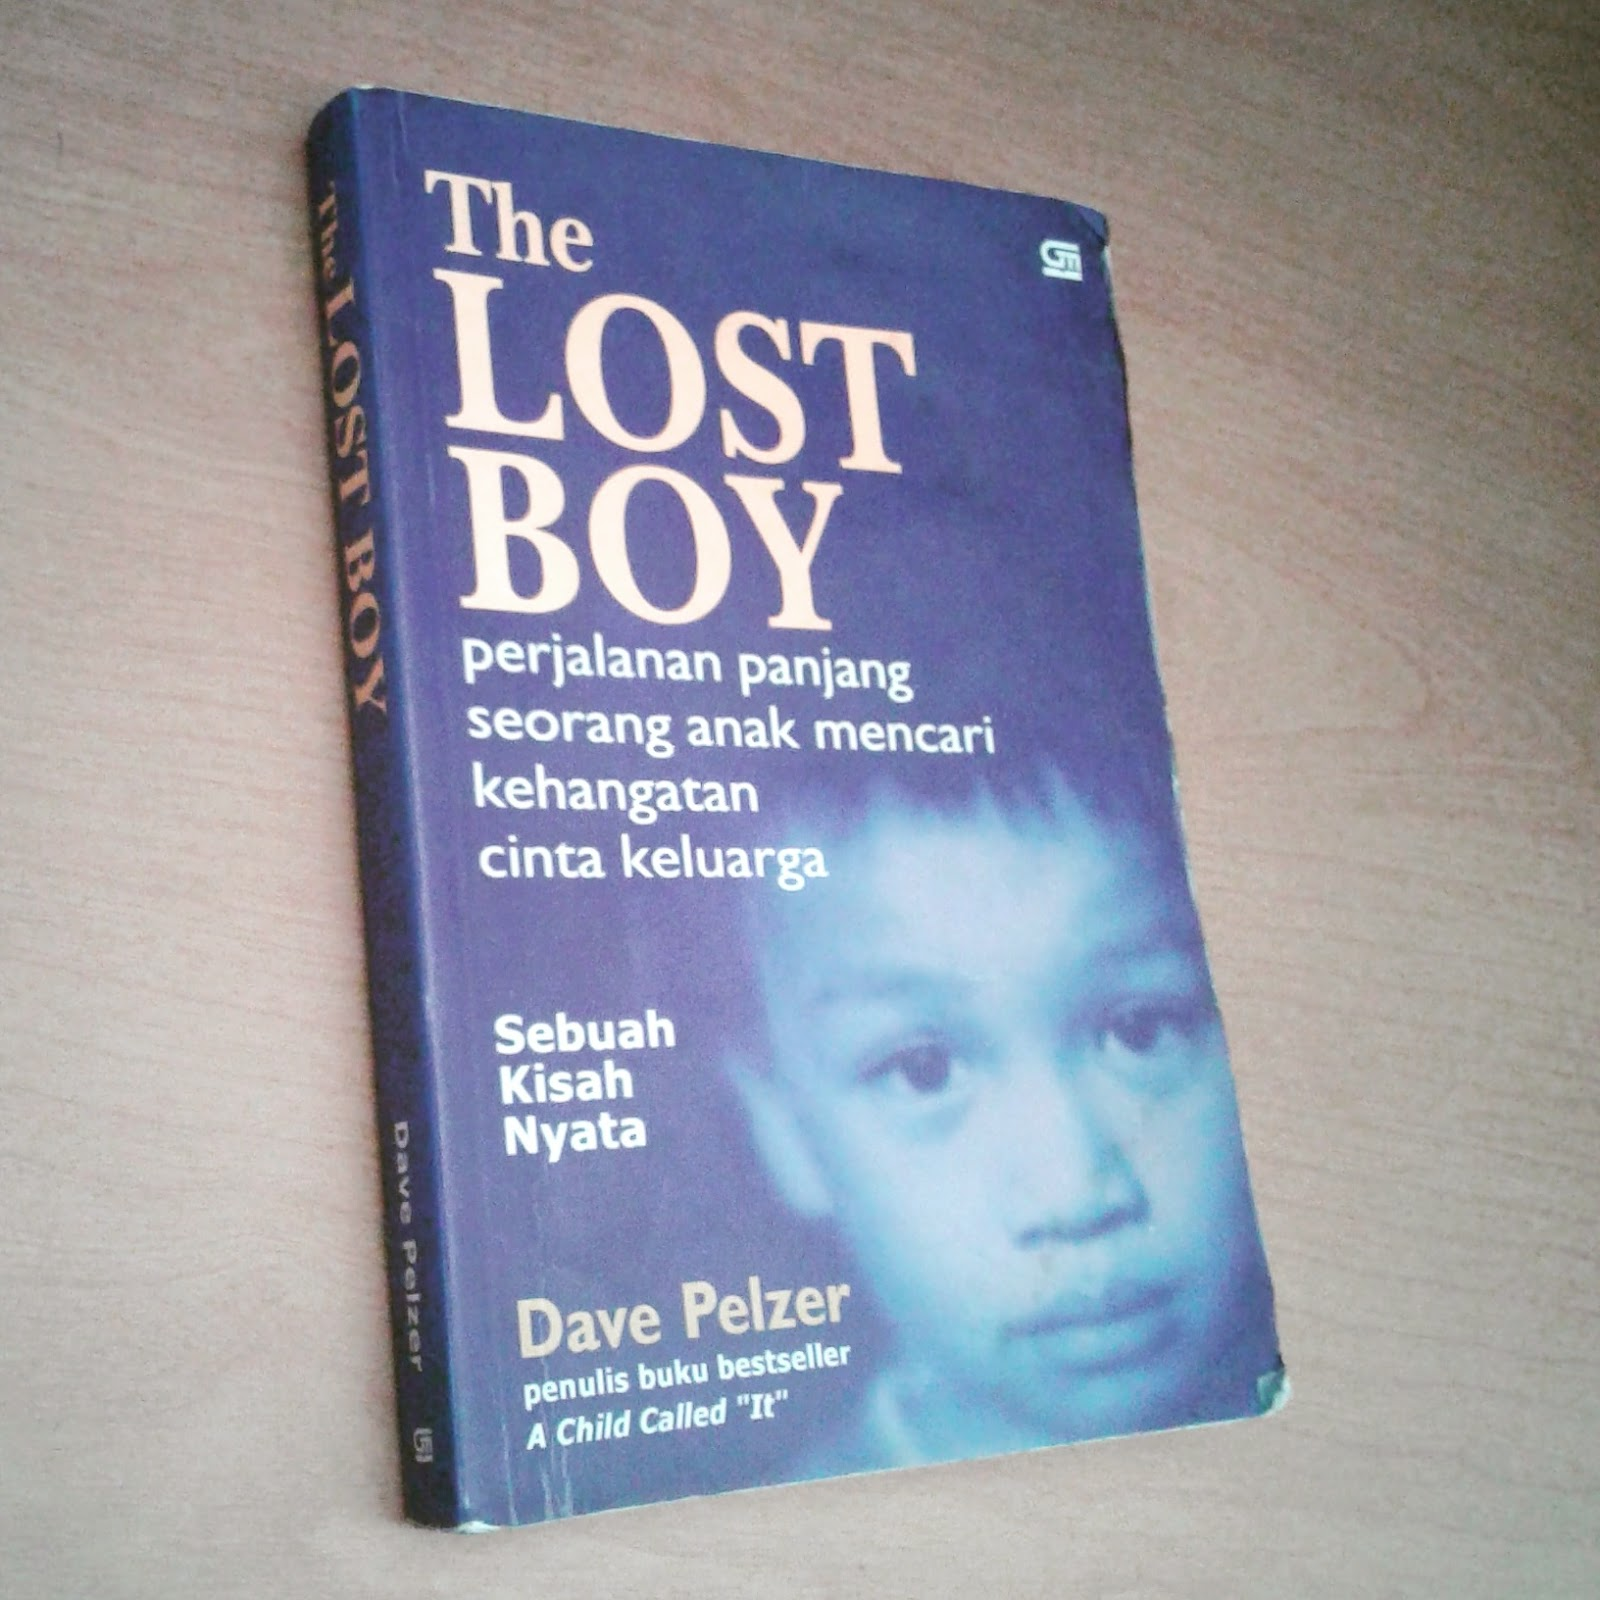 the lost boy dave pelzer The lost boy (1997) is the second installment of a trilogy of books which depict  the life of david pelzer, who as a young boy was physically, emotionally, mentally , and psychologically abused by his obsessive mother the book discusses  pelzer's struggling with his ability to fit in and adapt to  the lost boy is included  as the second book in dave pelzer's compilation.